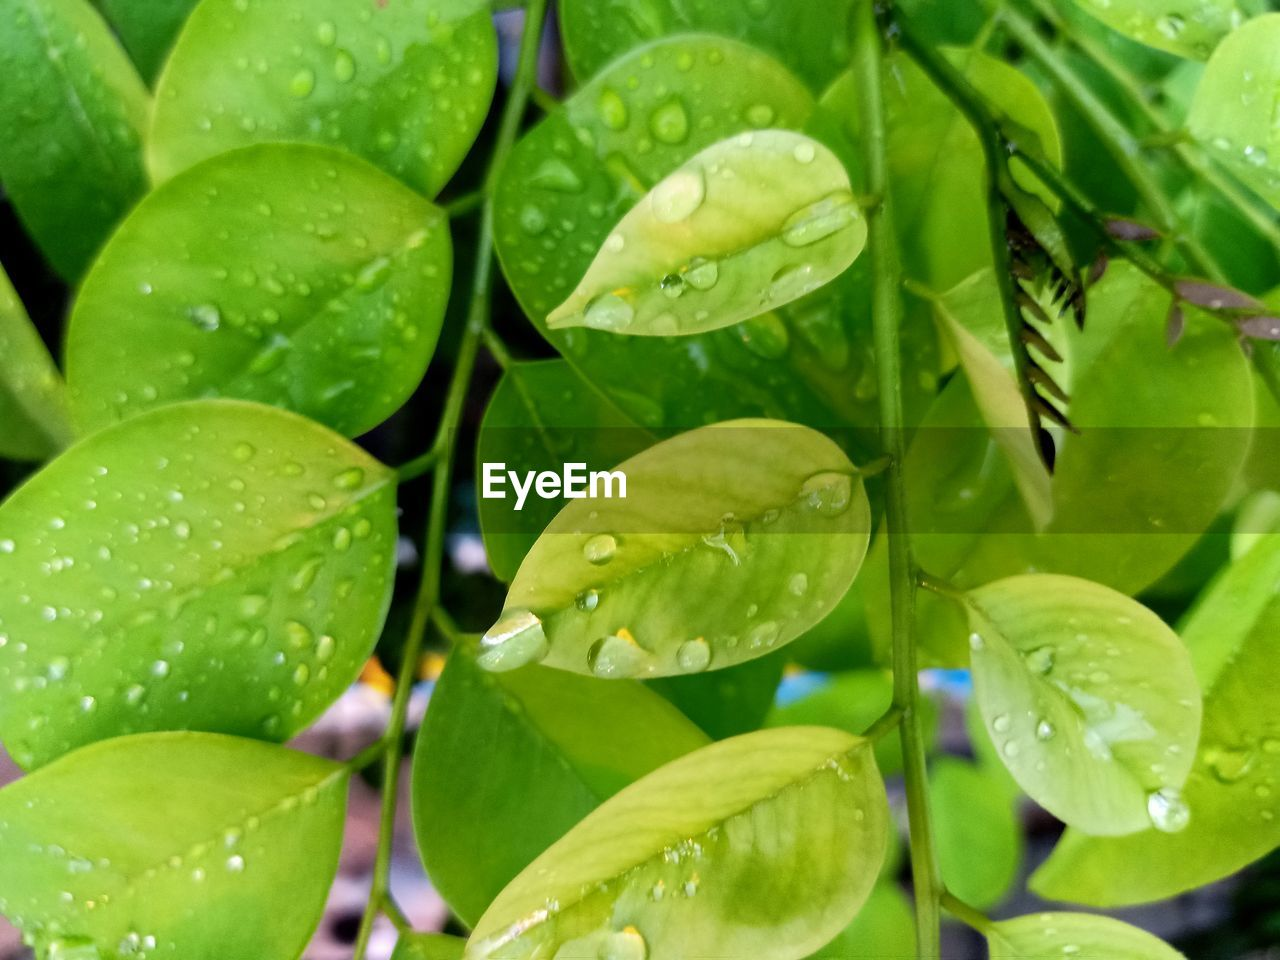 green color, leaf, plant part, growth, water, plant, close-up, drop, wet, beauty in nature, no people, day, full frame, nature, freshness, selective focus, outdoors, focus on foreground, leaves, rain, raindrop, purity, dew